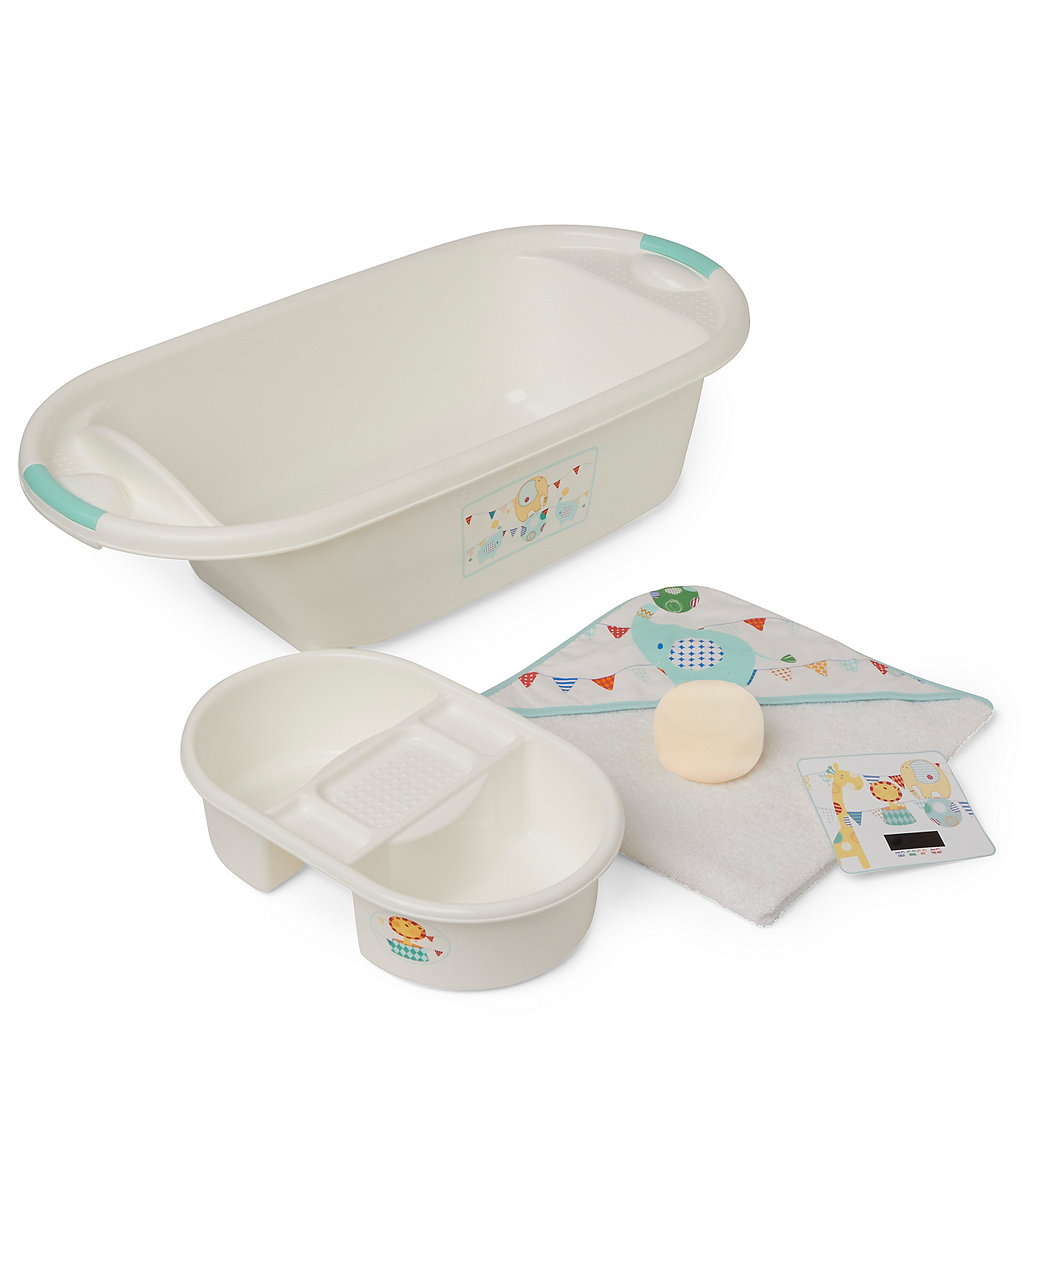 Mothercare Roll Up Roll Up Bath Set - baths - bathing - bathing